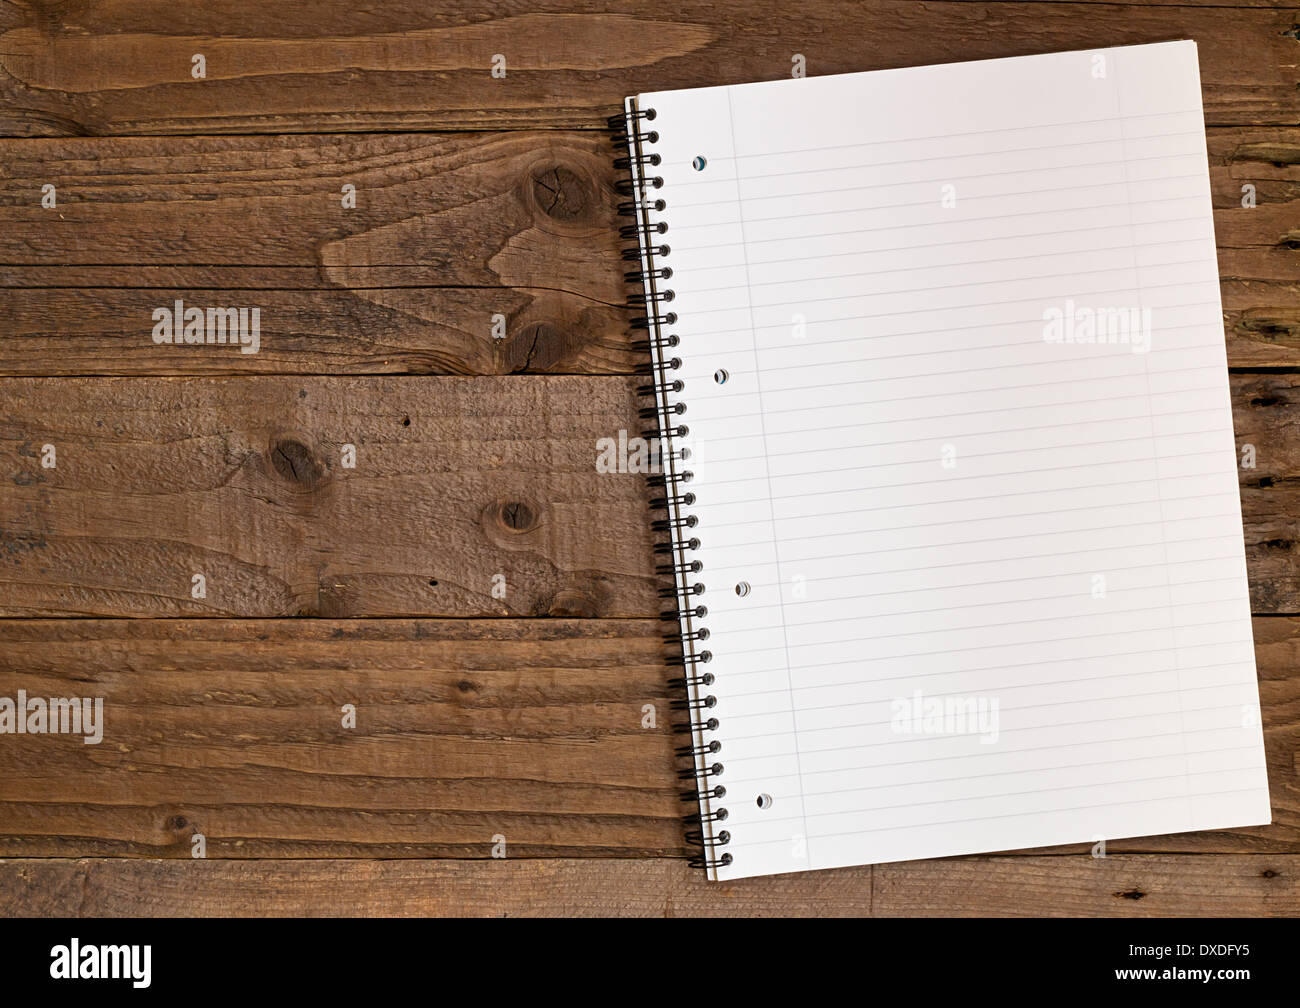 Blank lined notepad, A4 size with space on the left for insertion of your own design elements. - Stock Image